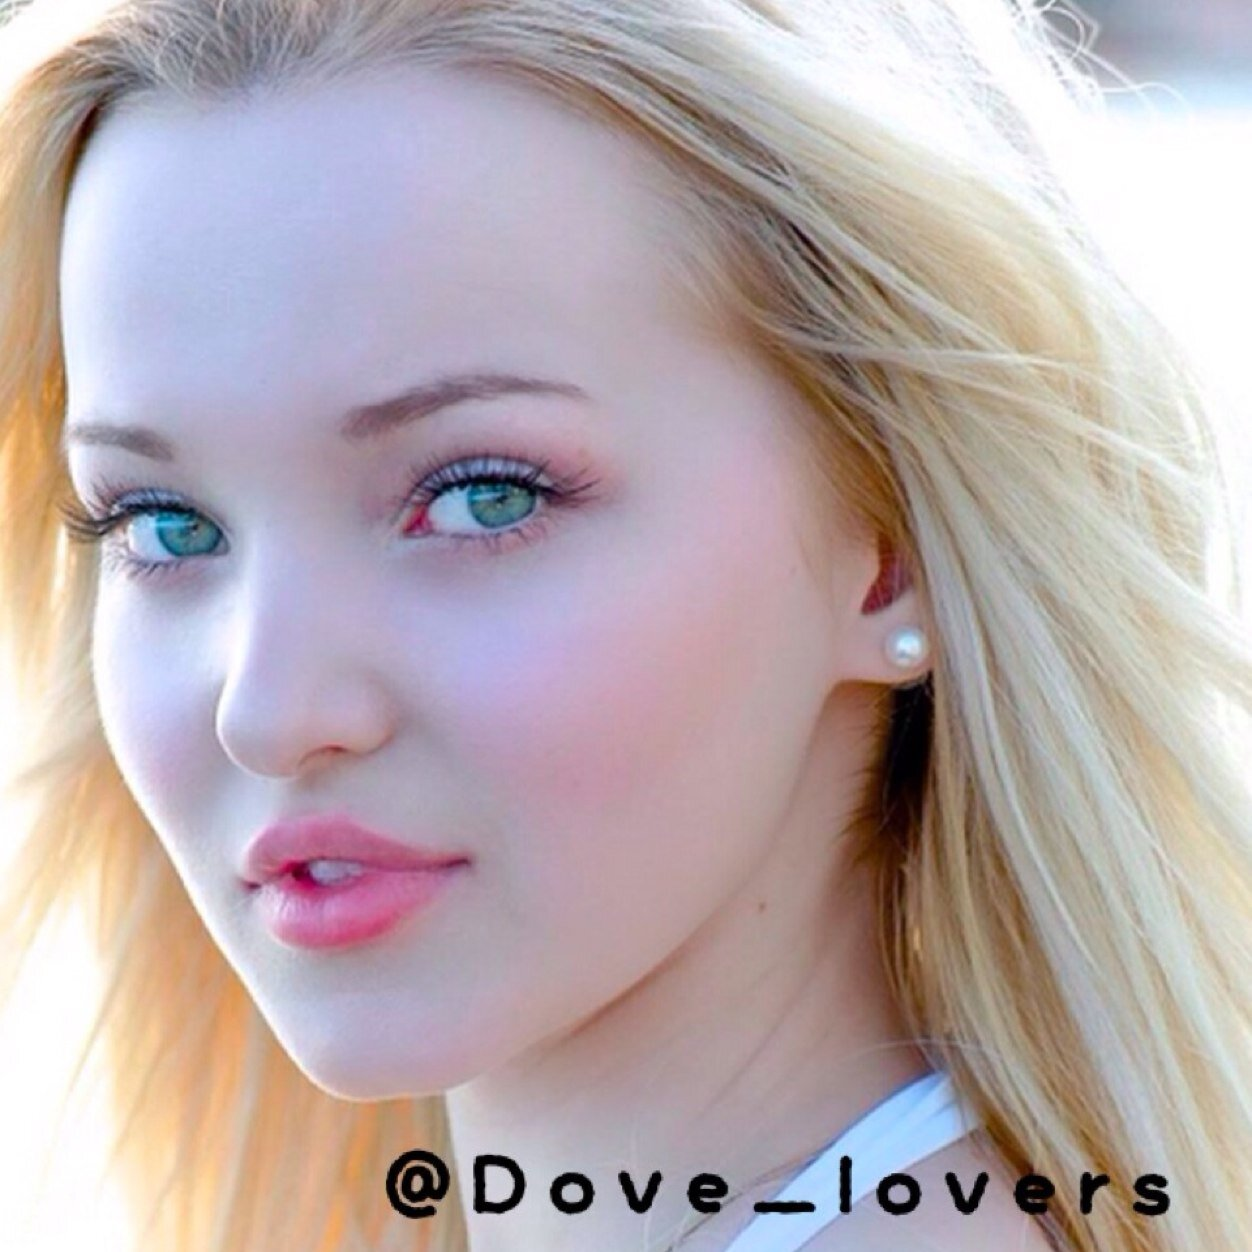 Dove Cameron Update (@Dove_lovers)